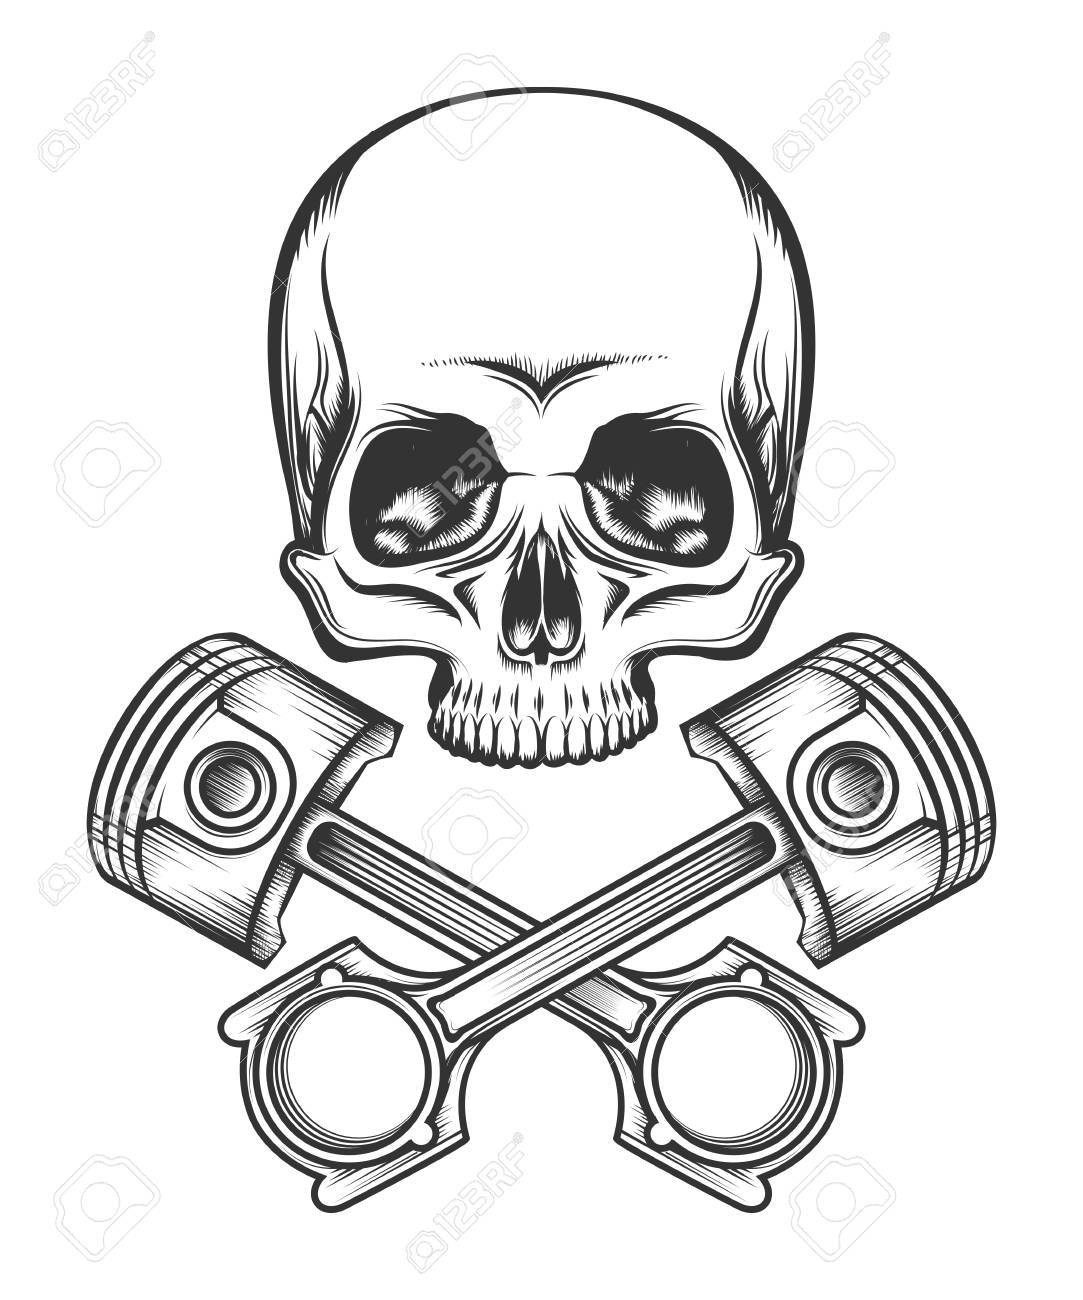 ece92d1f5b89f Human skull and crossed engine pistons. Isolated on white vector  illustration. Stock Vector -